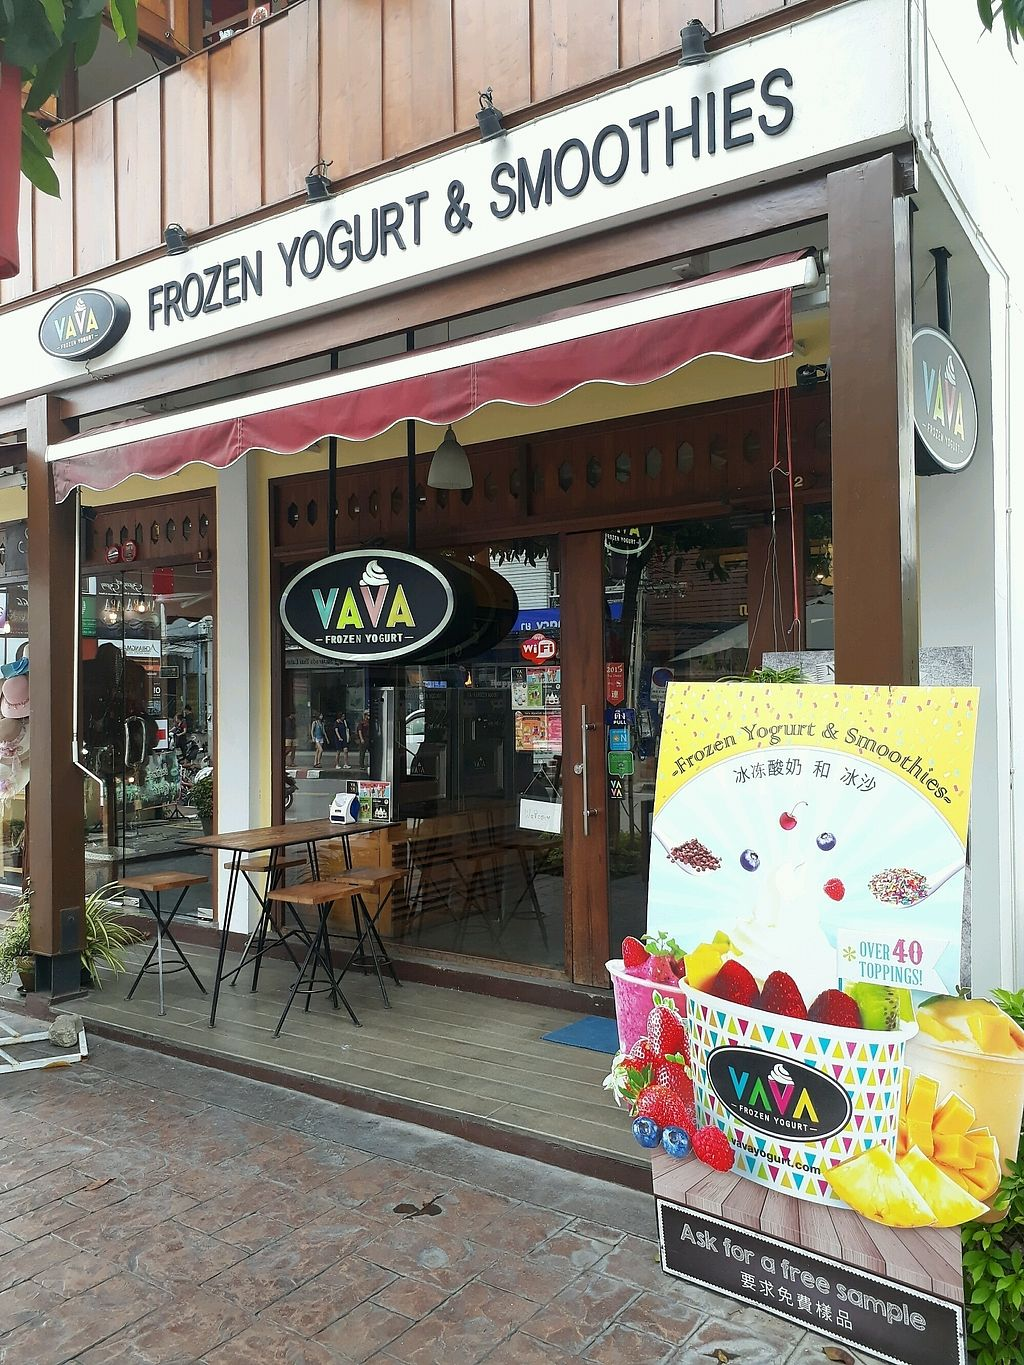 """Photo of VAVA Frozen Yogurt - Thae Pae Gate  by <a href=""""/members/profile/LilacHippy"""">LilacHippy</a> <br/>Outside shop <br/> October 2, 2017  - <a href='/contact/abuse/image/102120/310976'>Report</a>"""